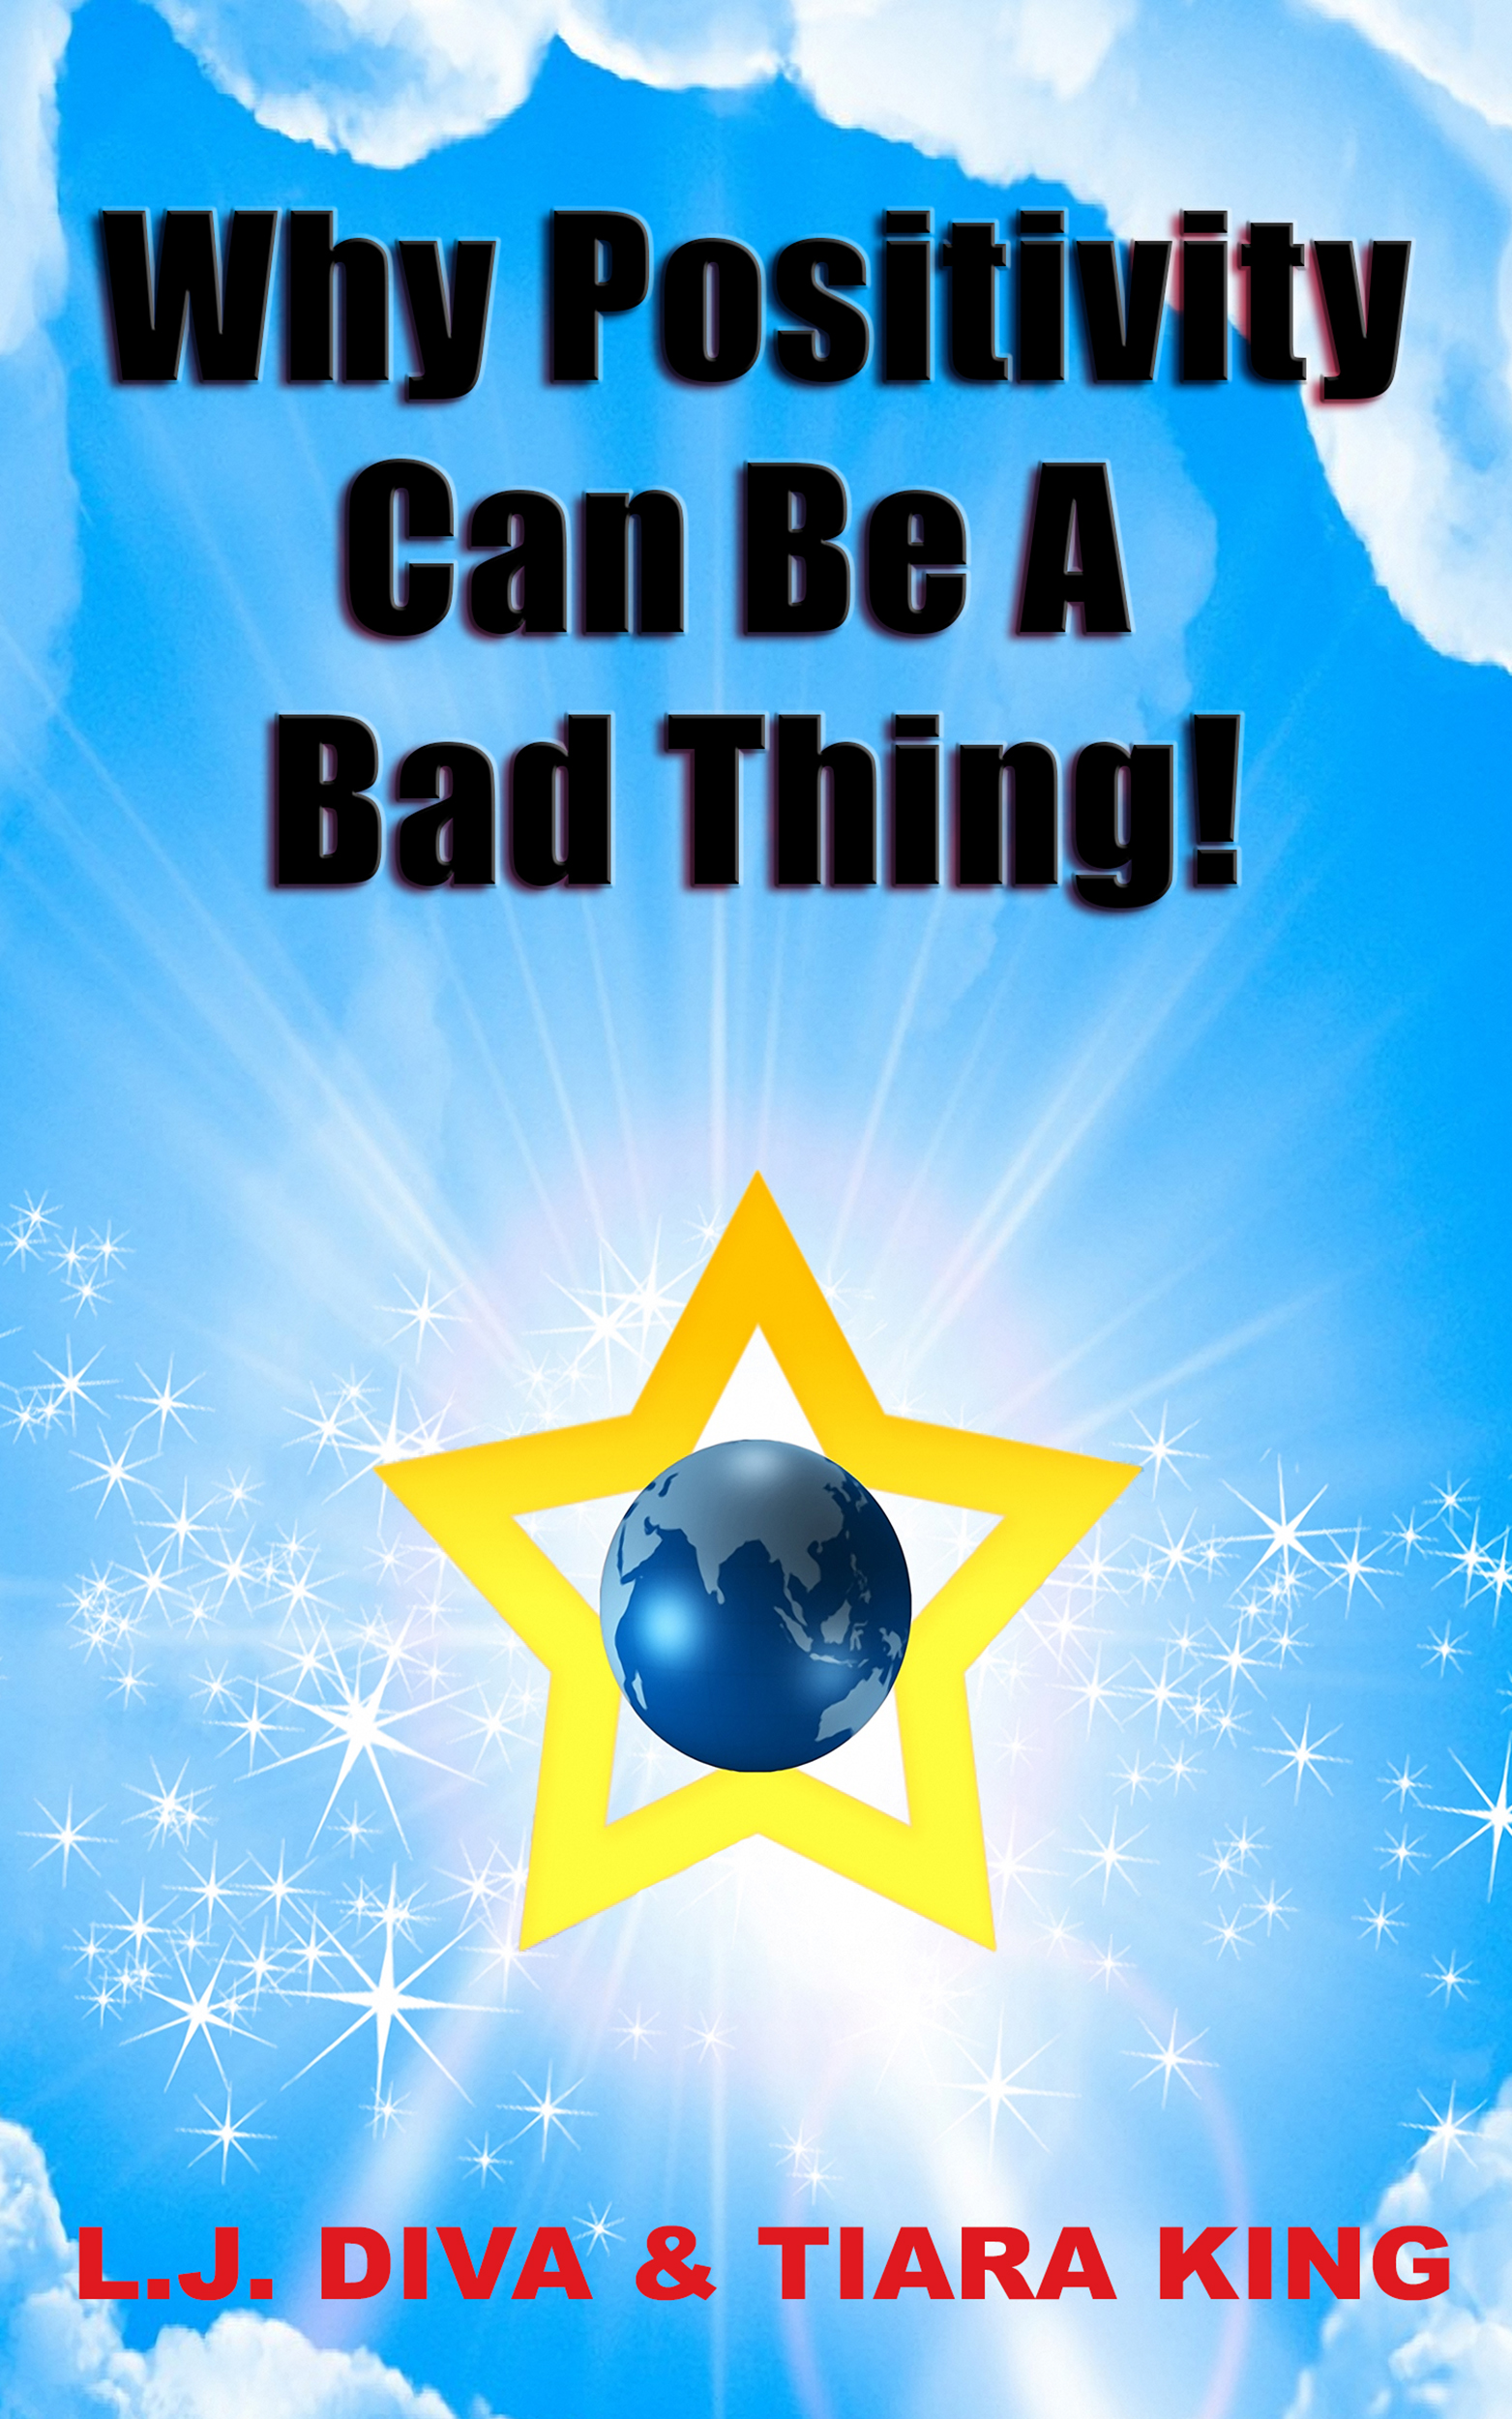 Tiara King & L.J. Diva's Why Positivity Can Be A Bad Thing!